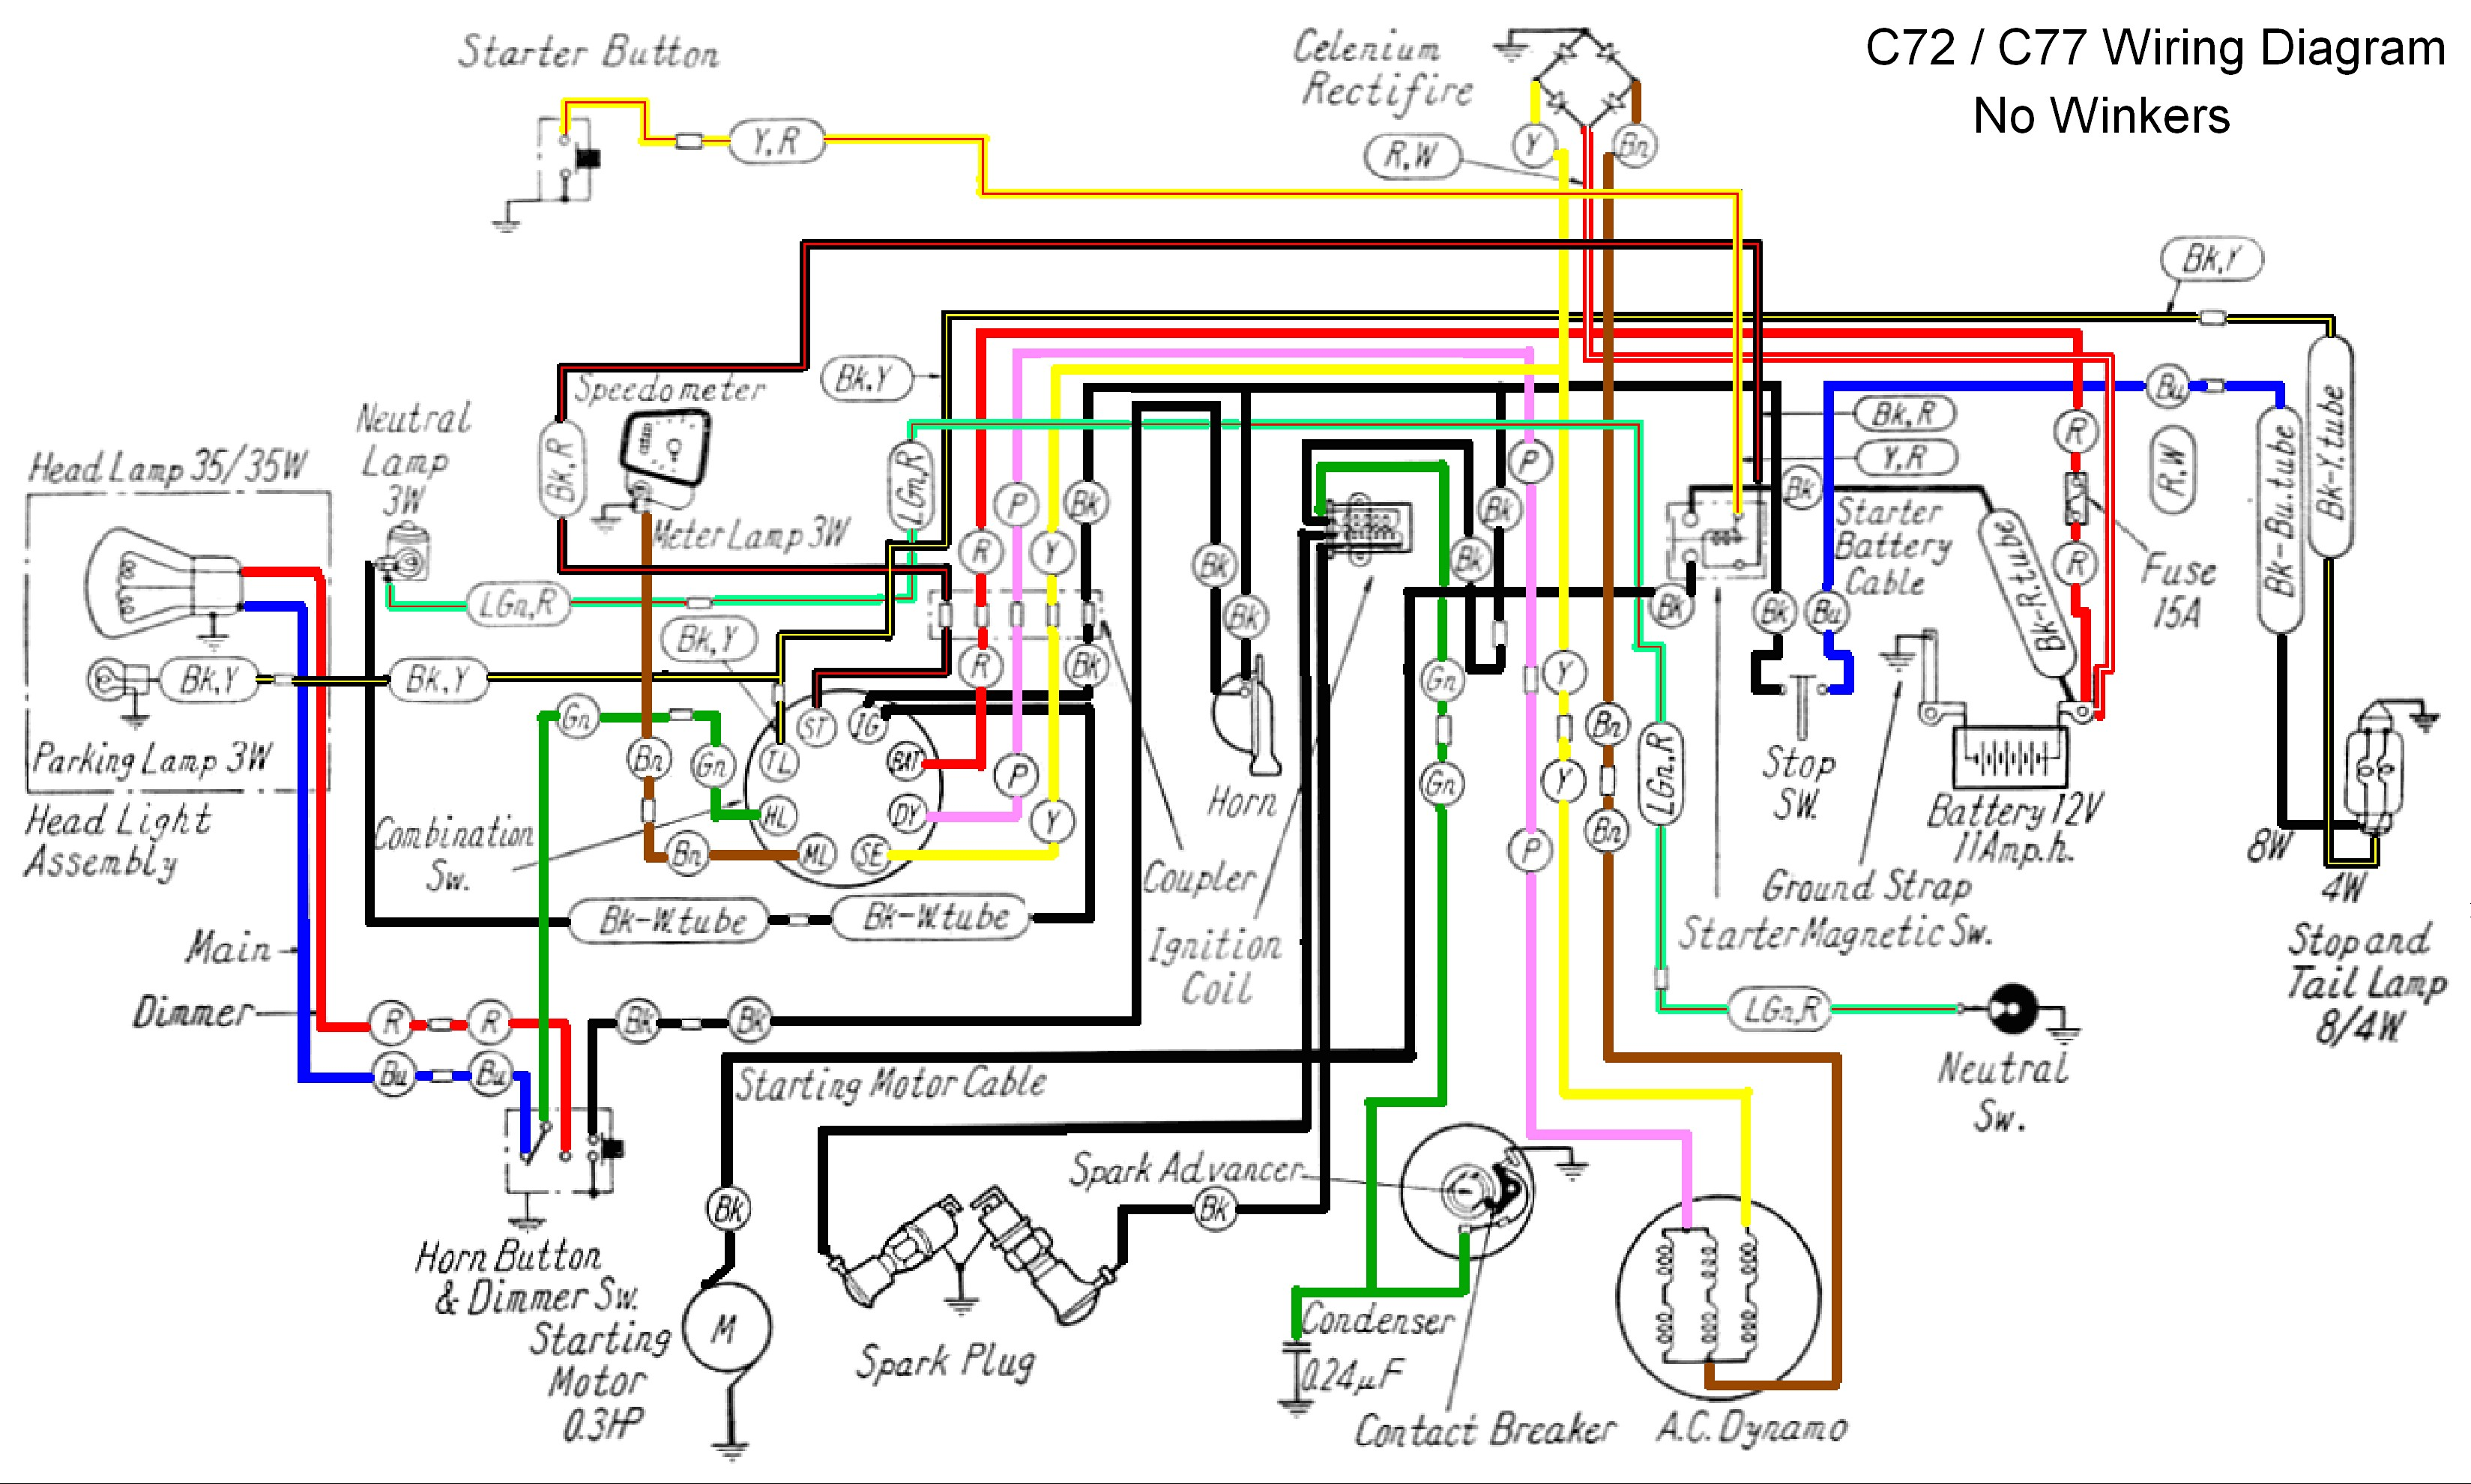 honda cb350f wiring diagram automotive block diagram u2022 rh carwiringdiagram today honda cb350 four wiring diagram honda cb350 four wiring diagram